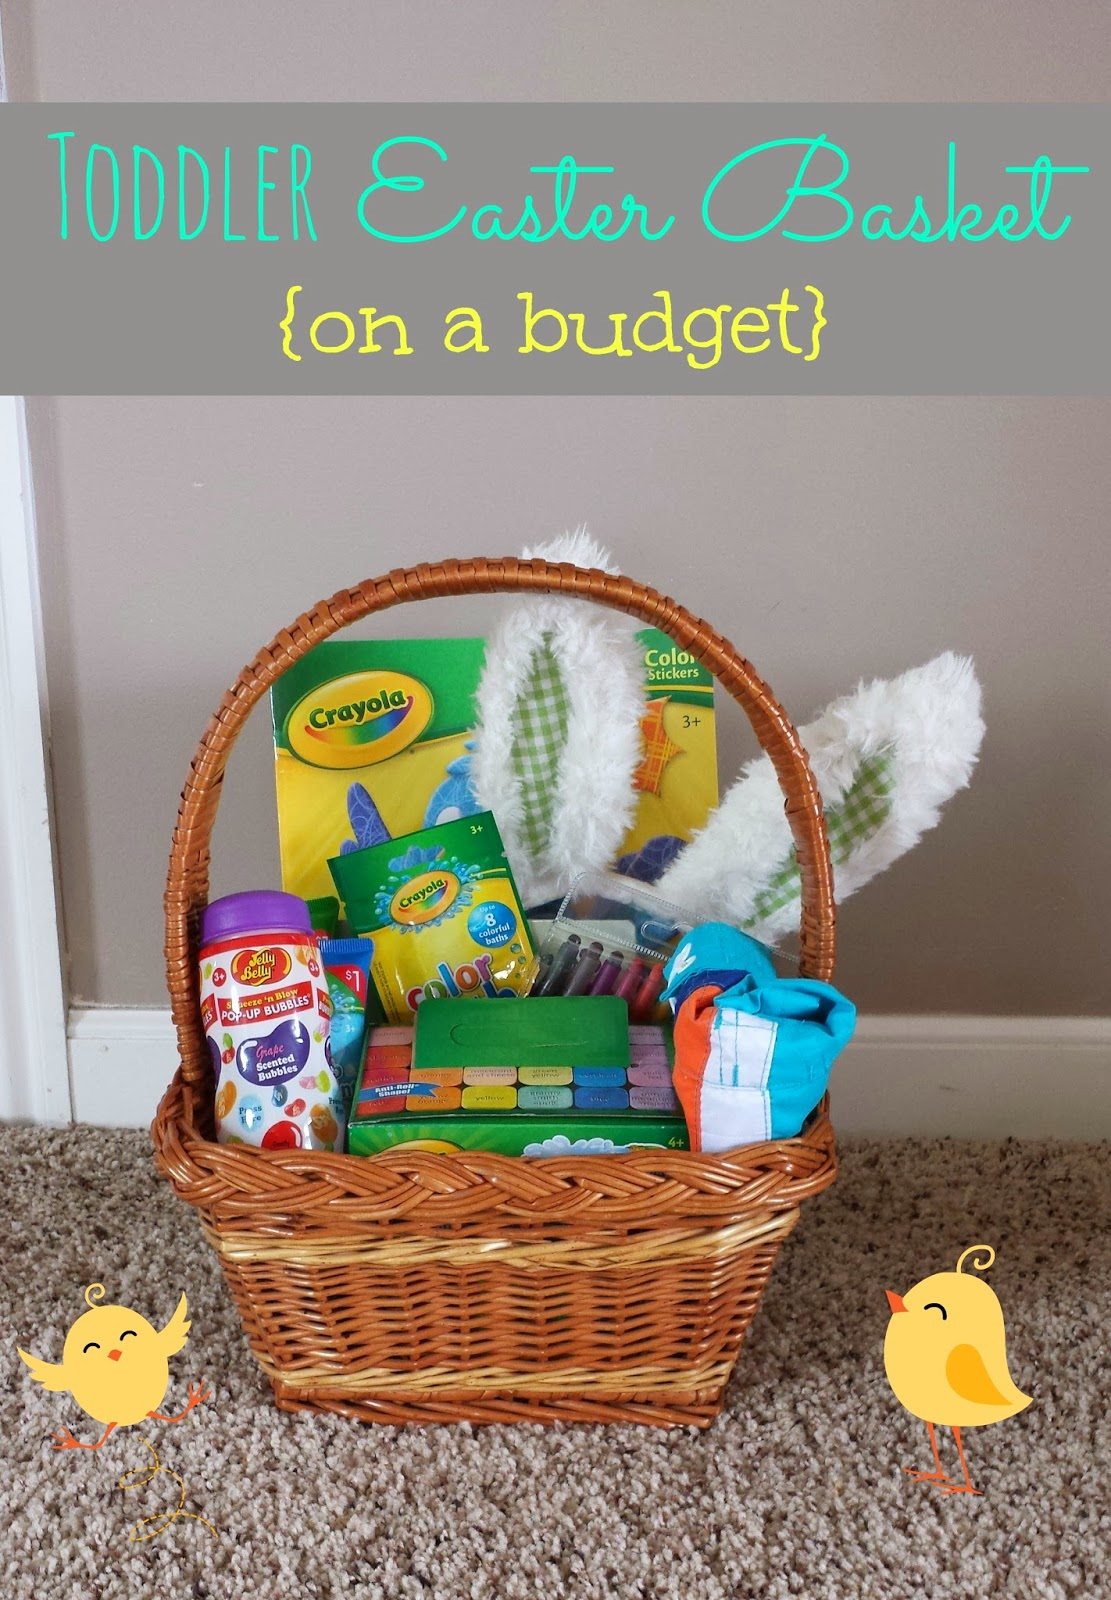 Simple suburbia toddler easter basket ideas here is what i came up with for a toddler easter basket on a budget negle Image collections